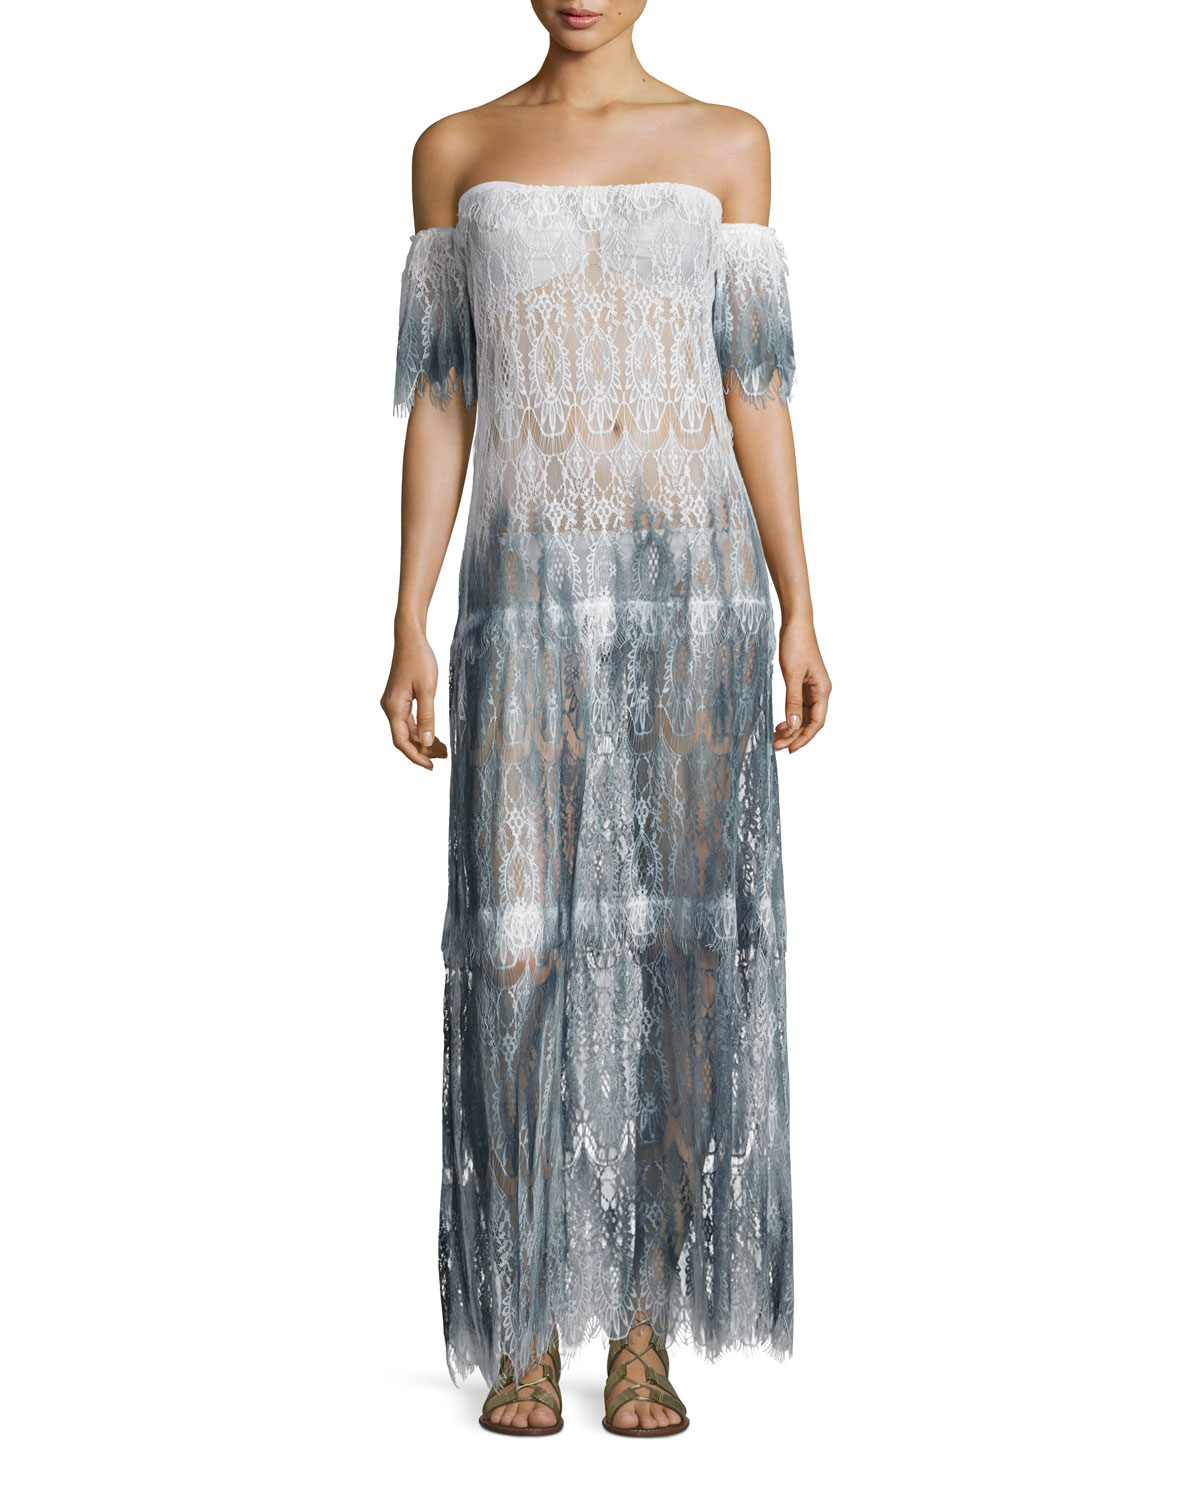 Queen & Pawn COMINO OMBRÉ LACE MAXI COVERUP DRESS, BLUE